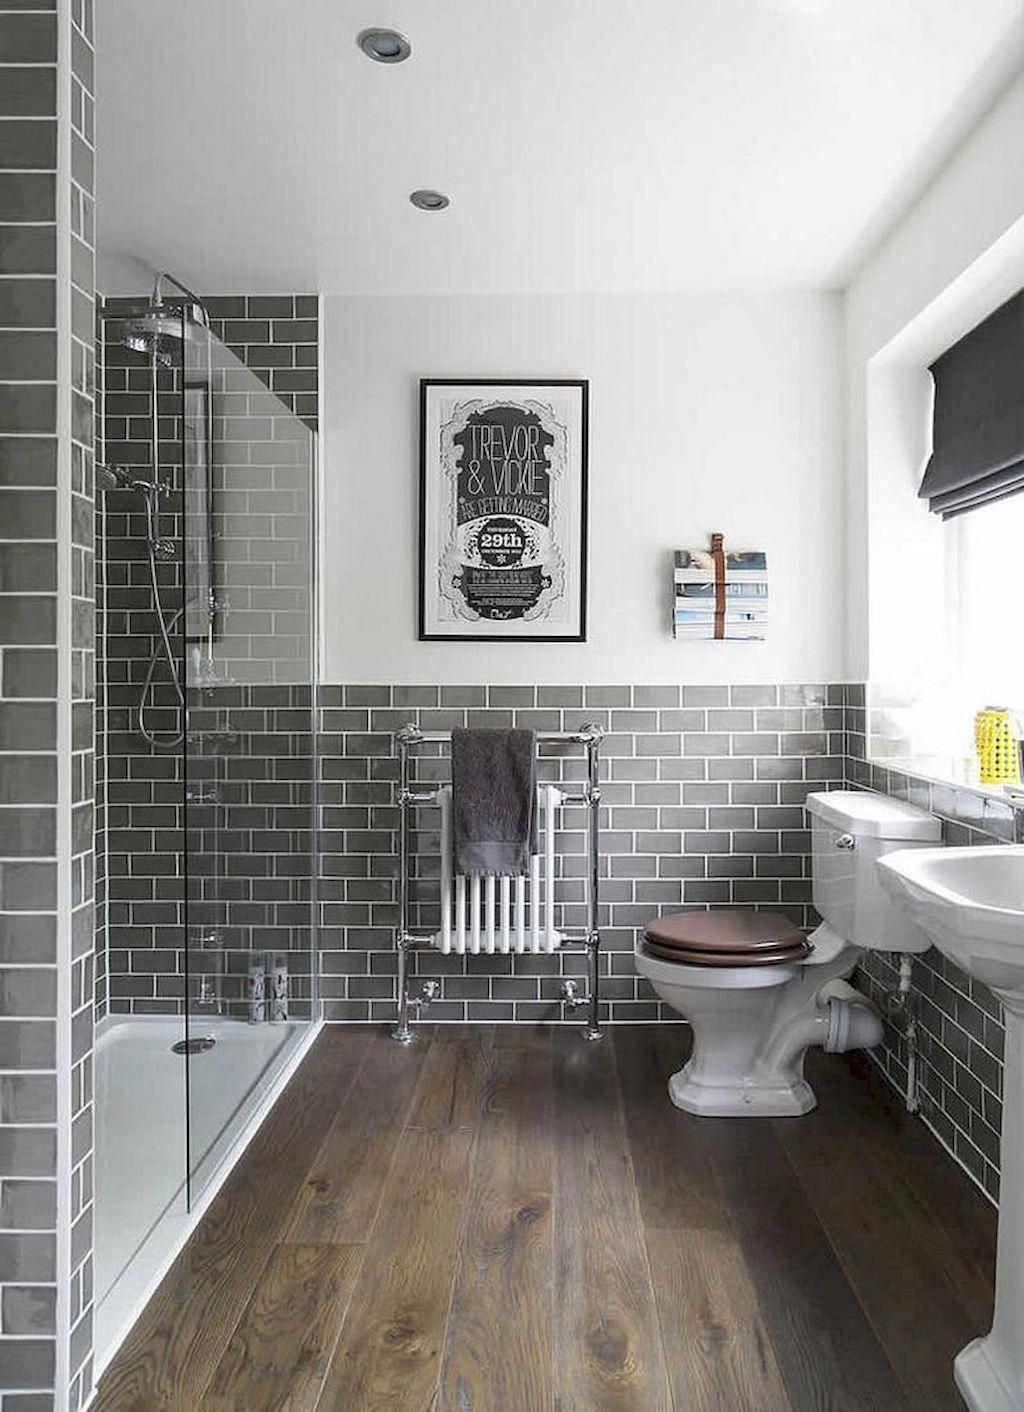 50 best farmhouse bathroom tile remodel ideas 32 on beautiful farmhouse bathroom shower decor ideas and remodel an extraordinary design id=66029